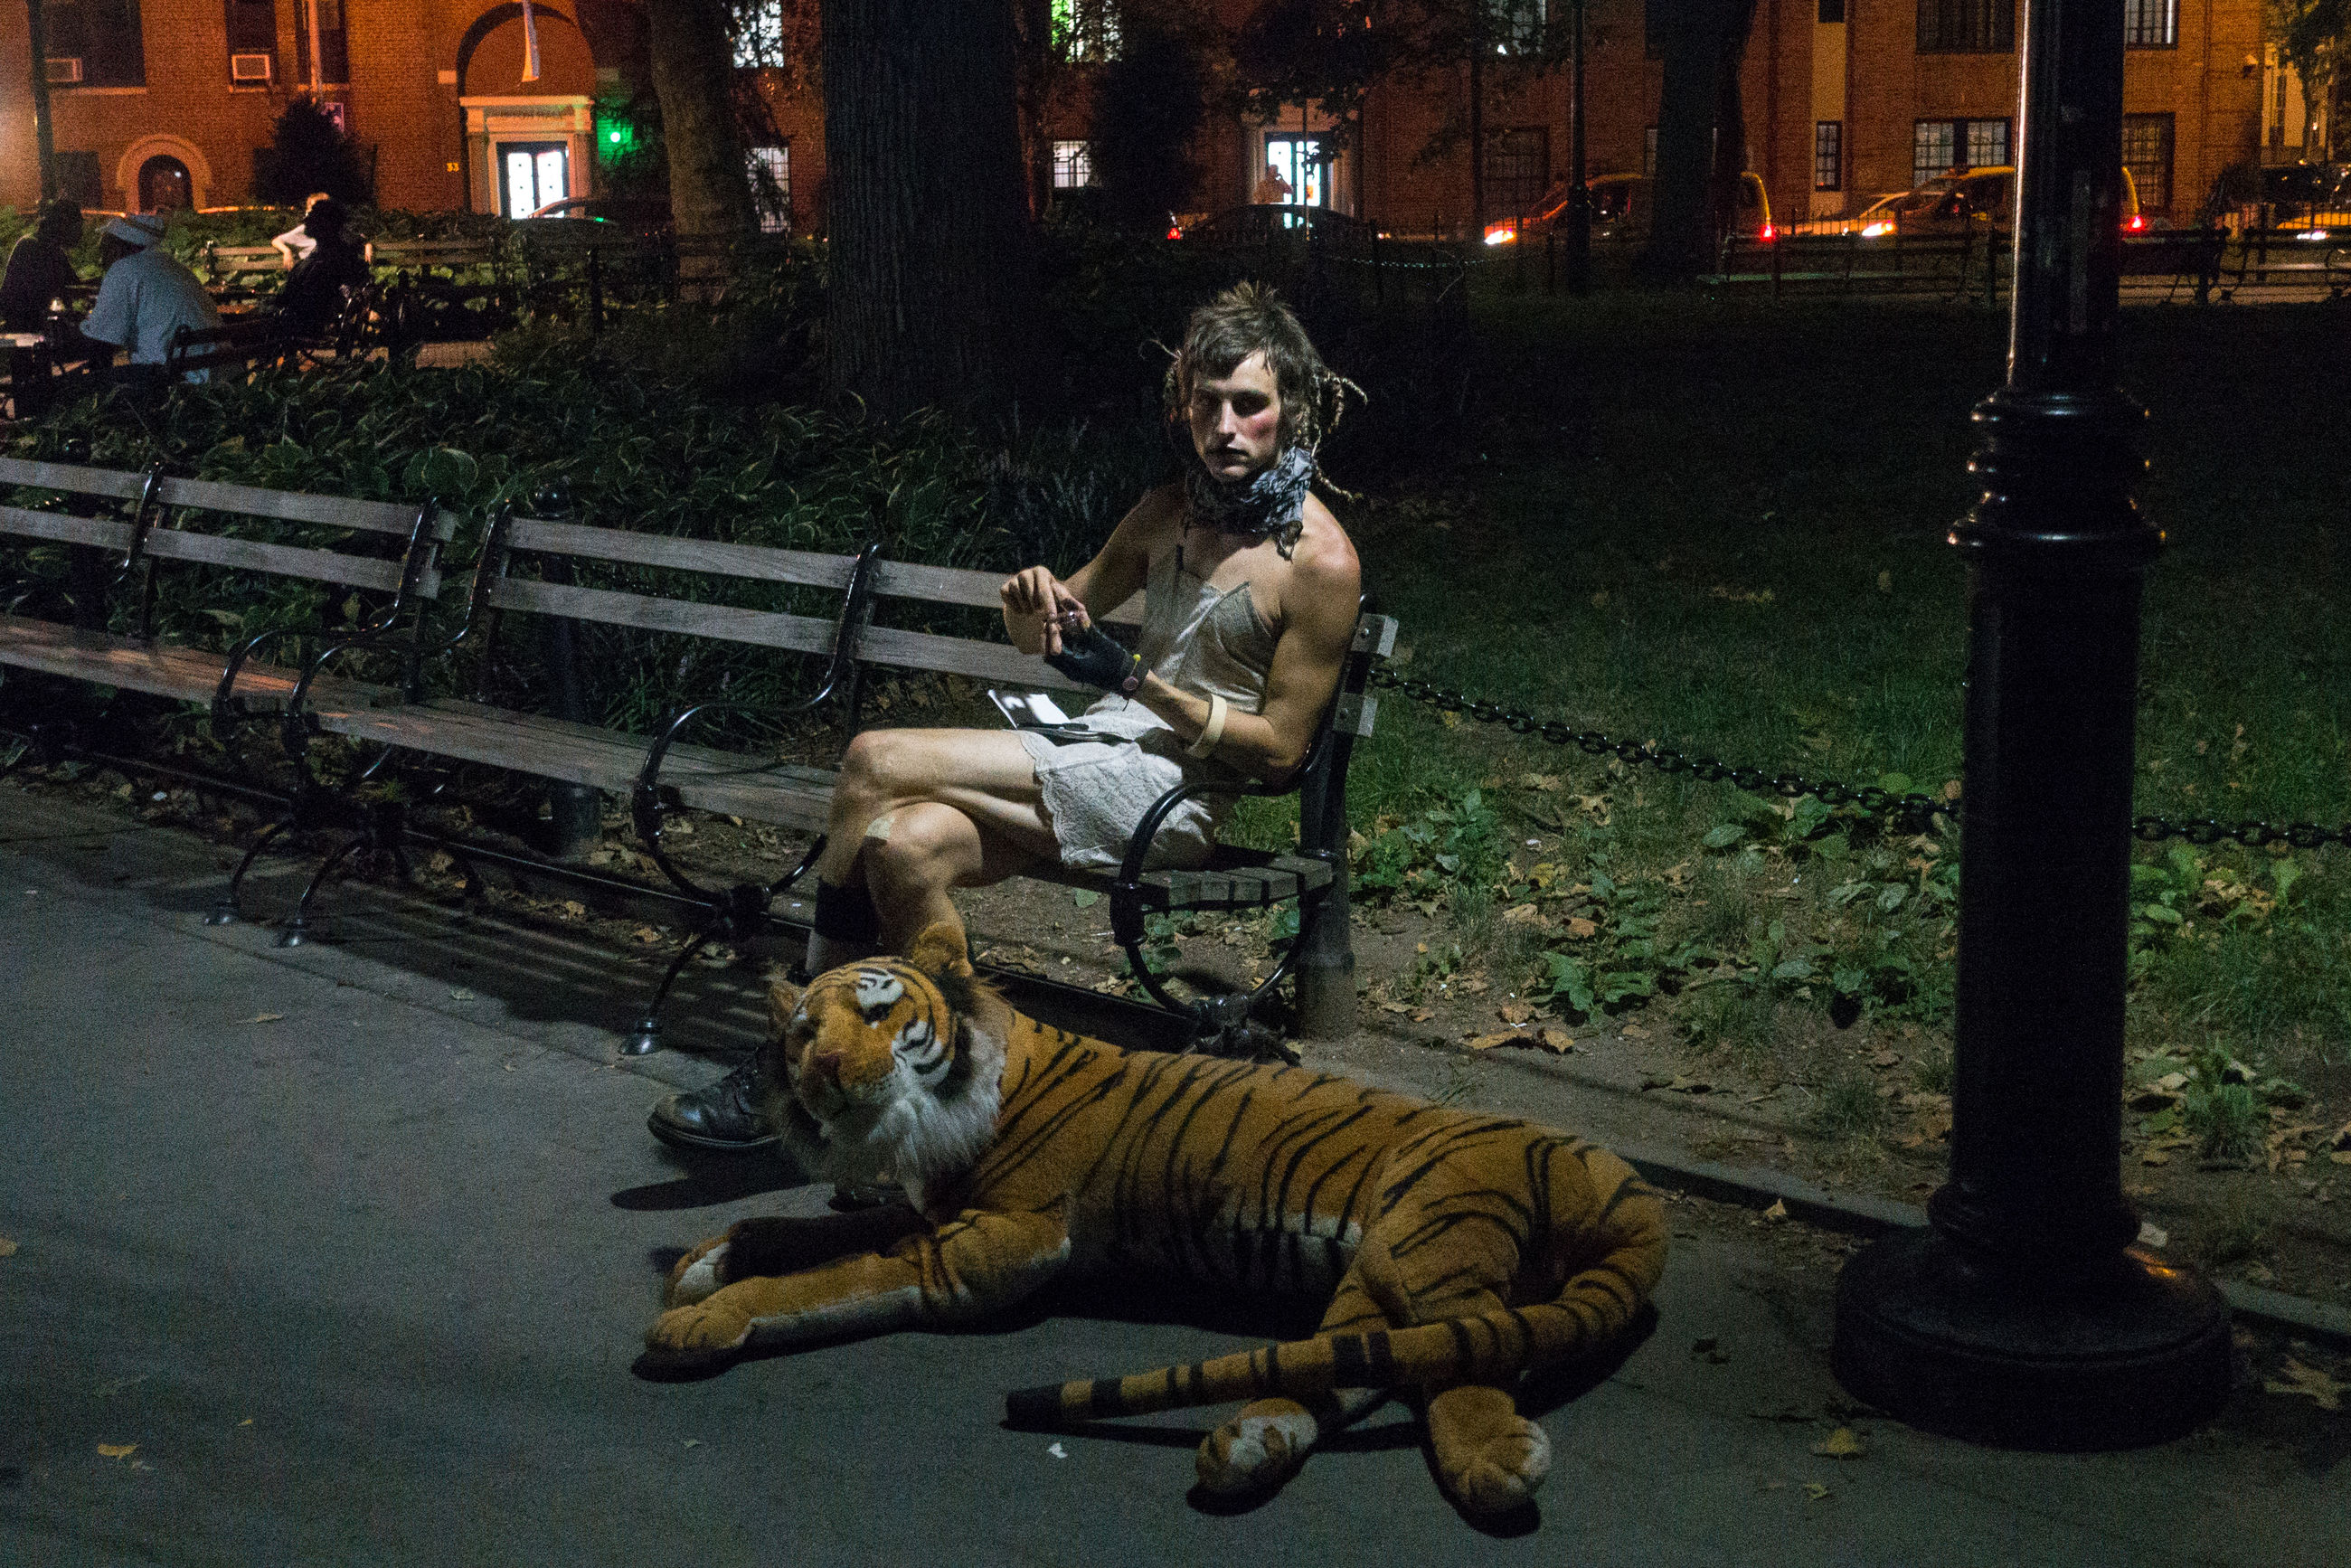 animal themes, one animal, outdoors, night, one person, full length, mammal, building exterior, tiger, domestic animals, city, young adult, people